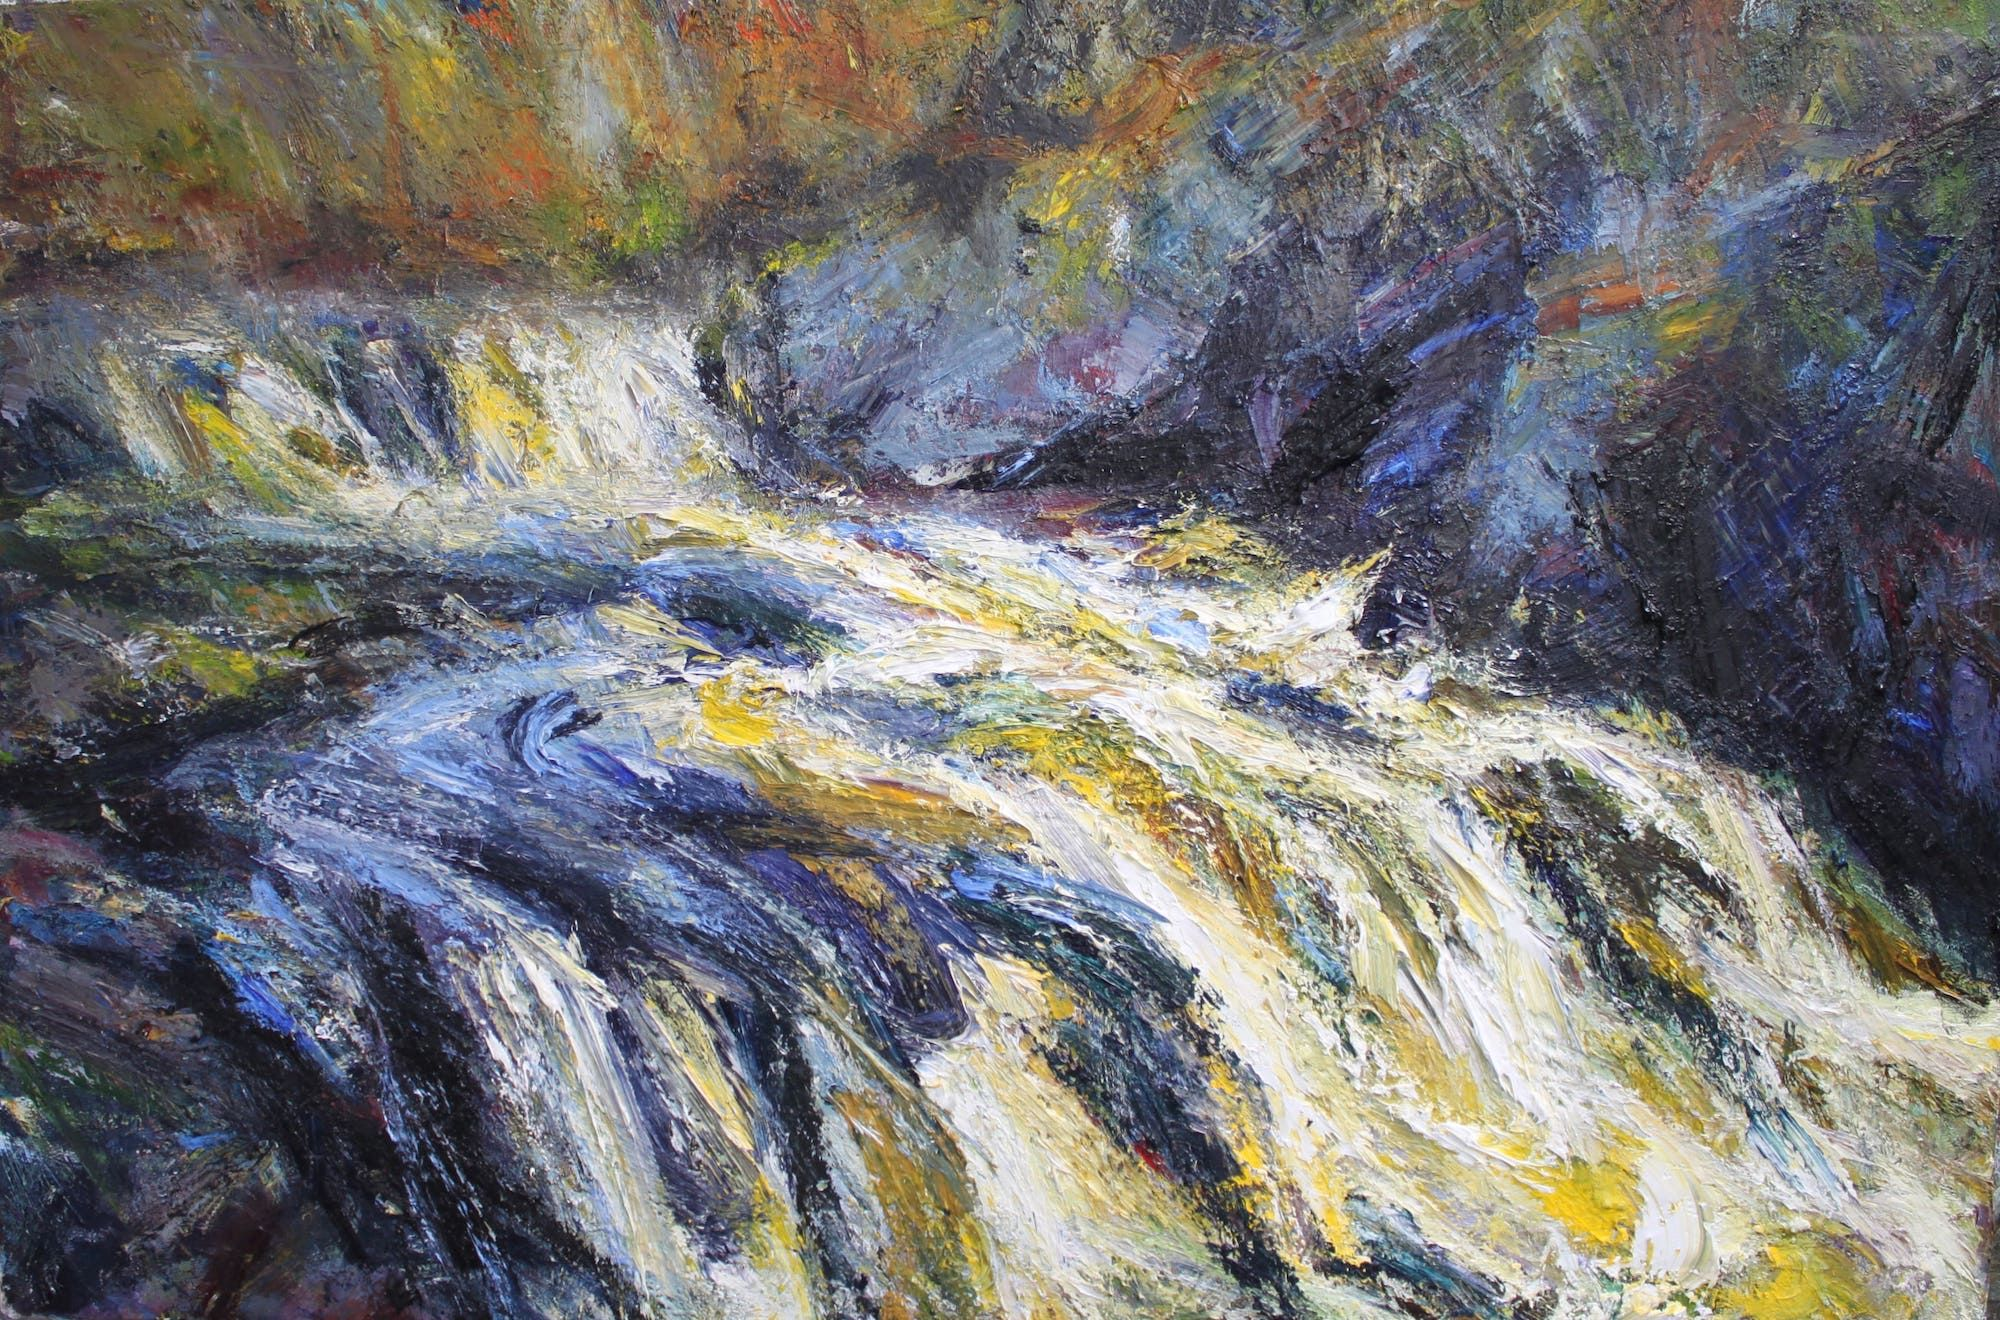 Swollen river, Black water,Jonathan Shearer,Peinture contemporaine